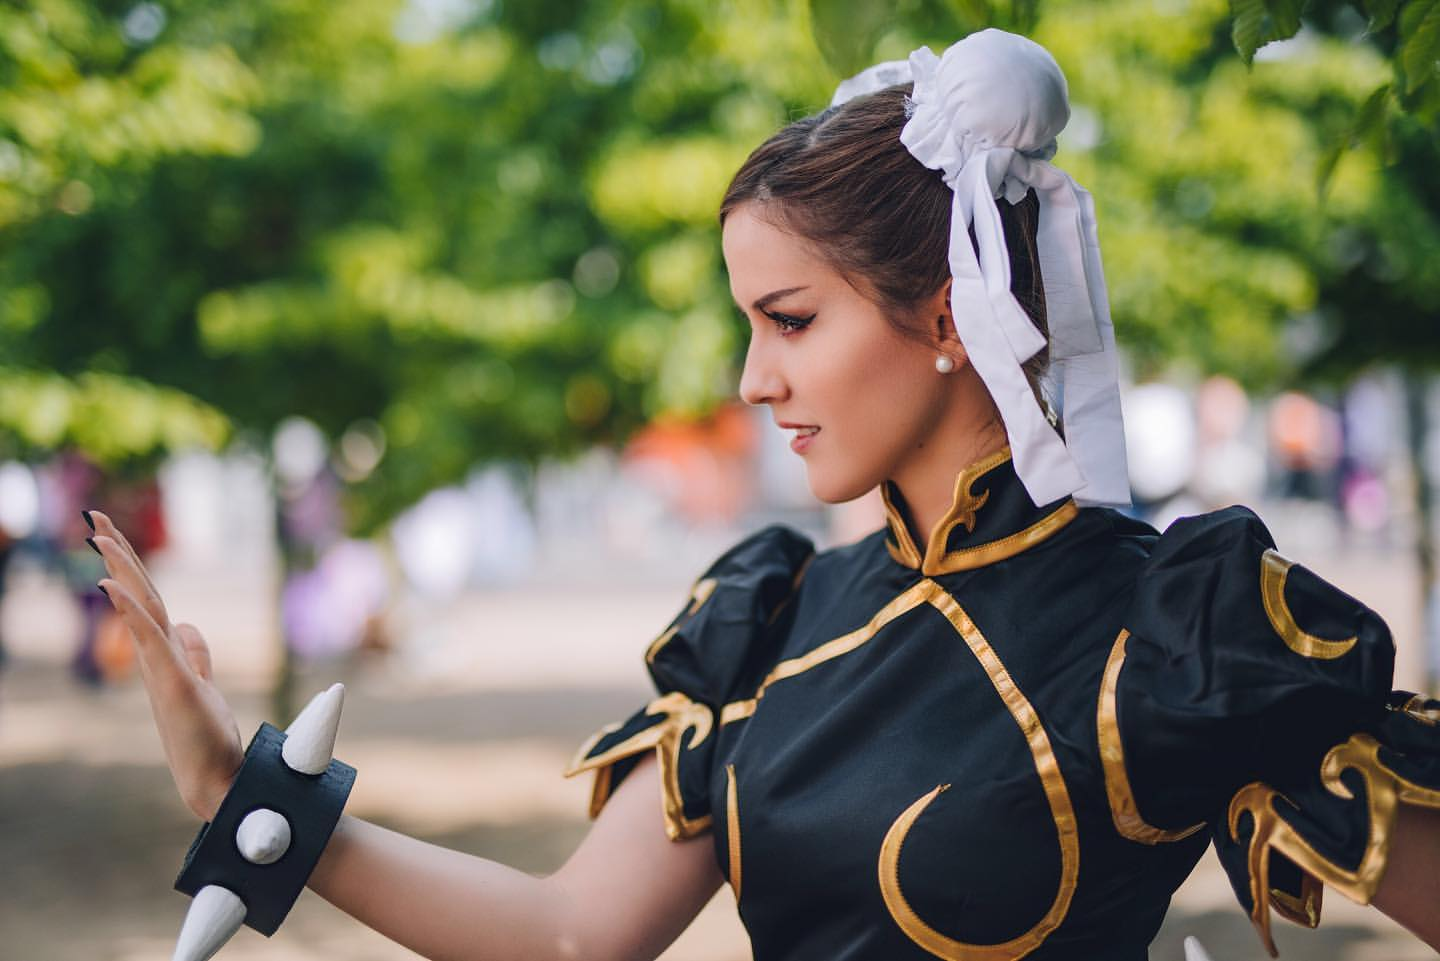 Street Fighter: Chun-Li cosplay by Xen